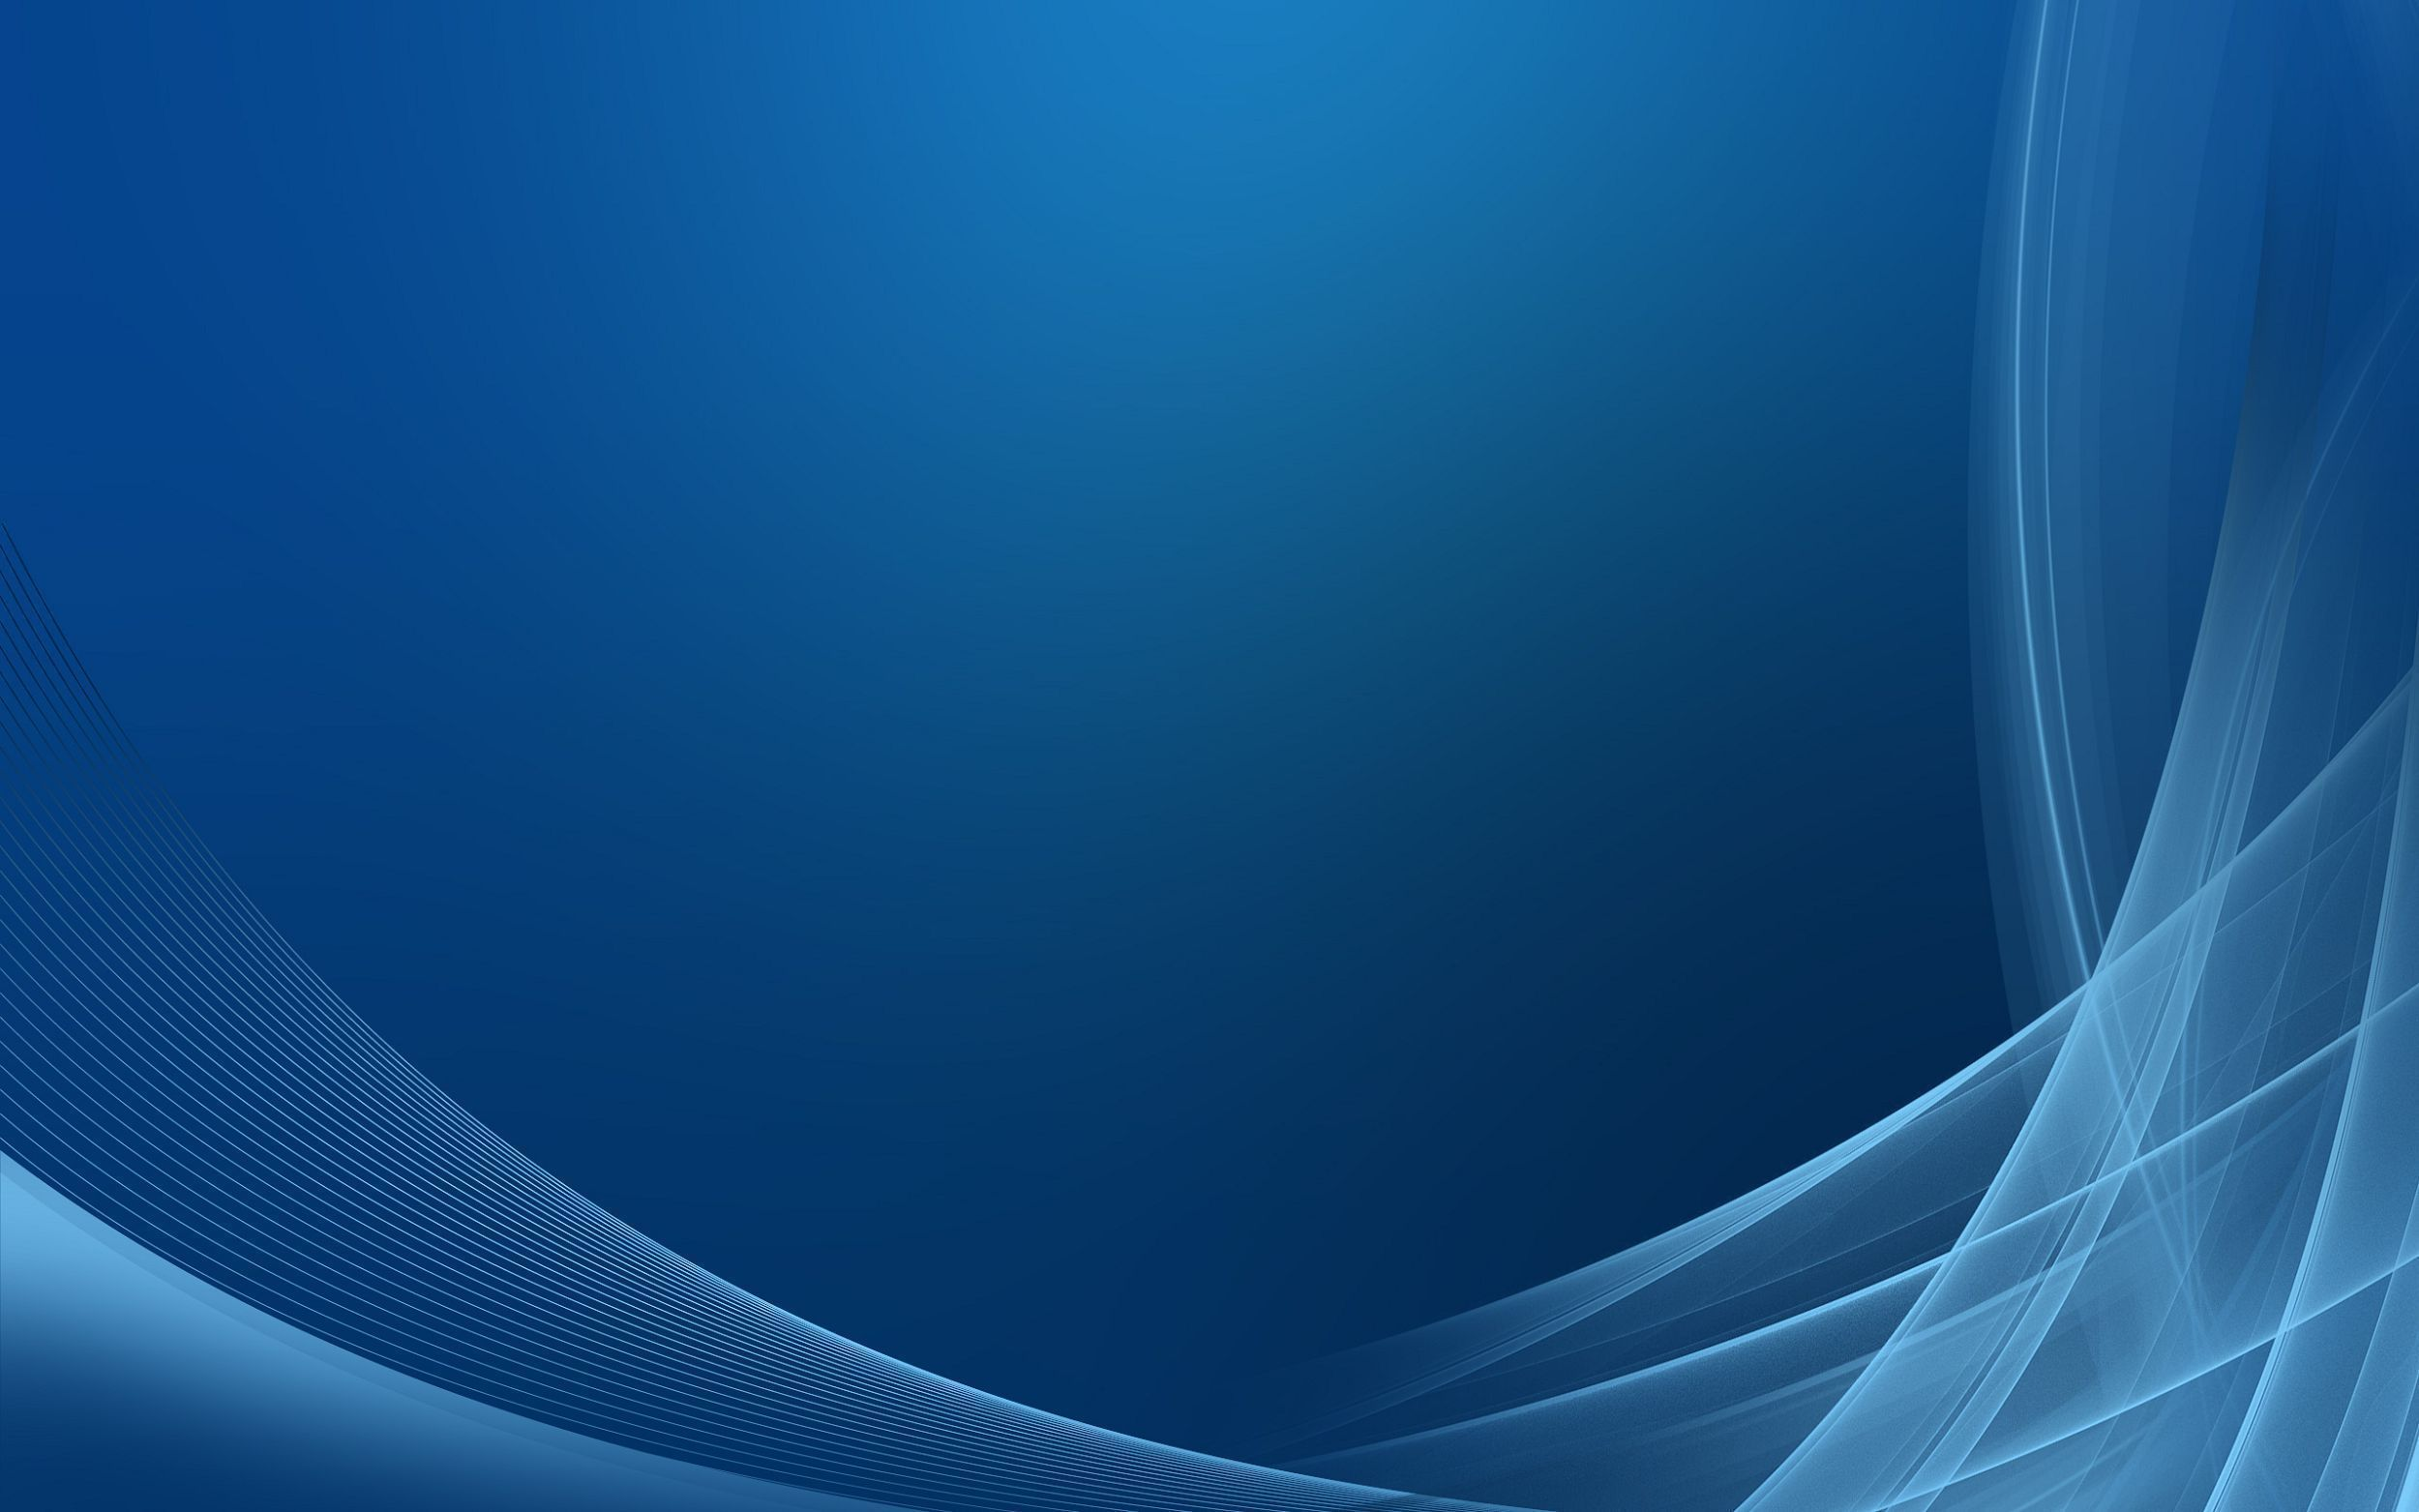 Blue Abstract HD Background